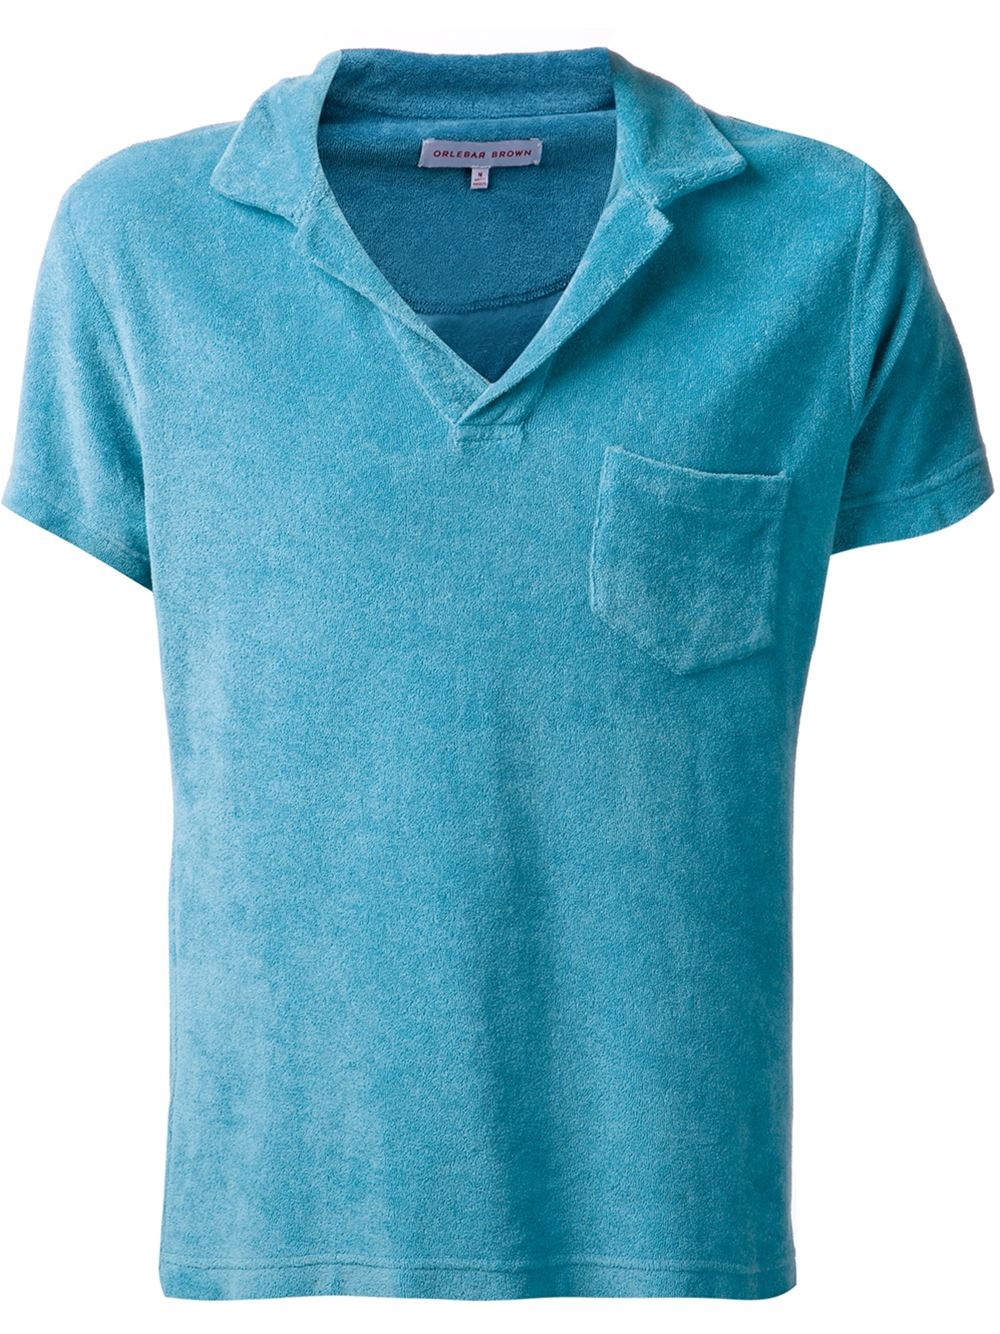 Orlebar brown terry towelling polo shirt in blue for men for Mens terry cloth polo shirt